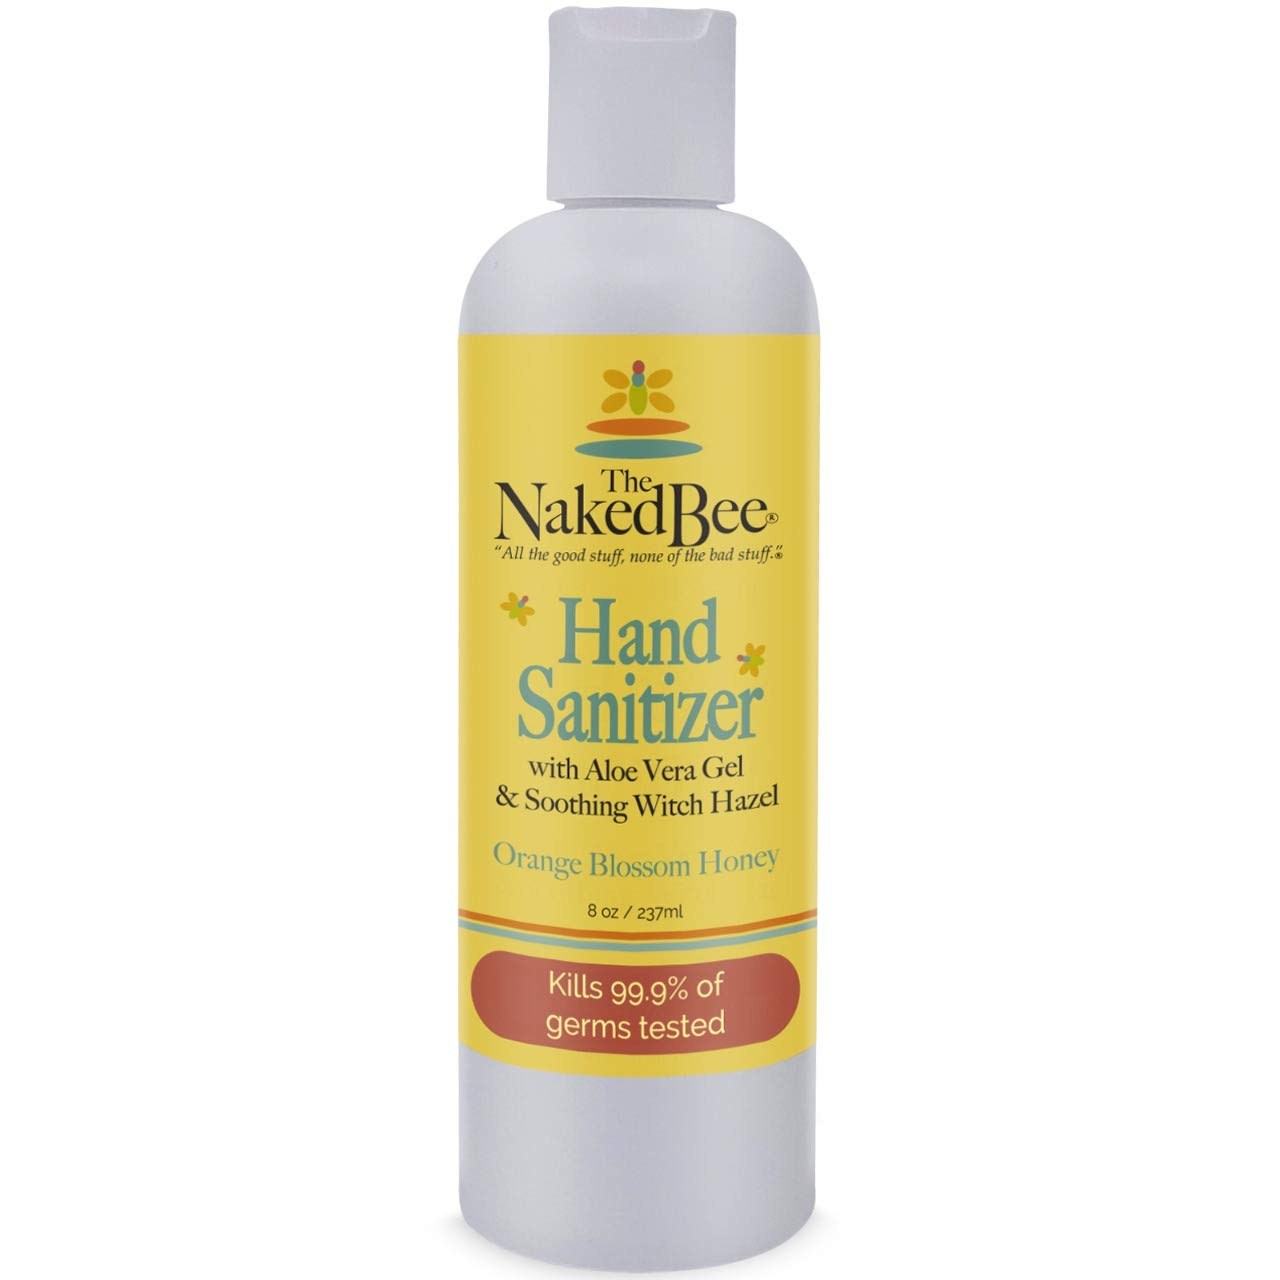 The Naked Bee Hand Sanitizer - Orange Blossom Honey Pump 8oz - Antiseptic Decreases Bacteria on Hands - Orange Blossom Honey Hand Sanitizer (1 Pack)